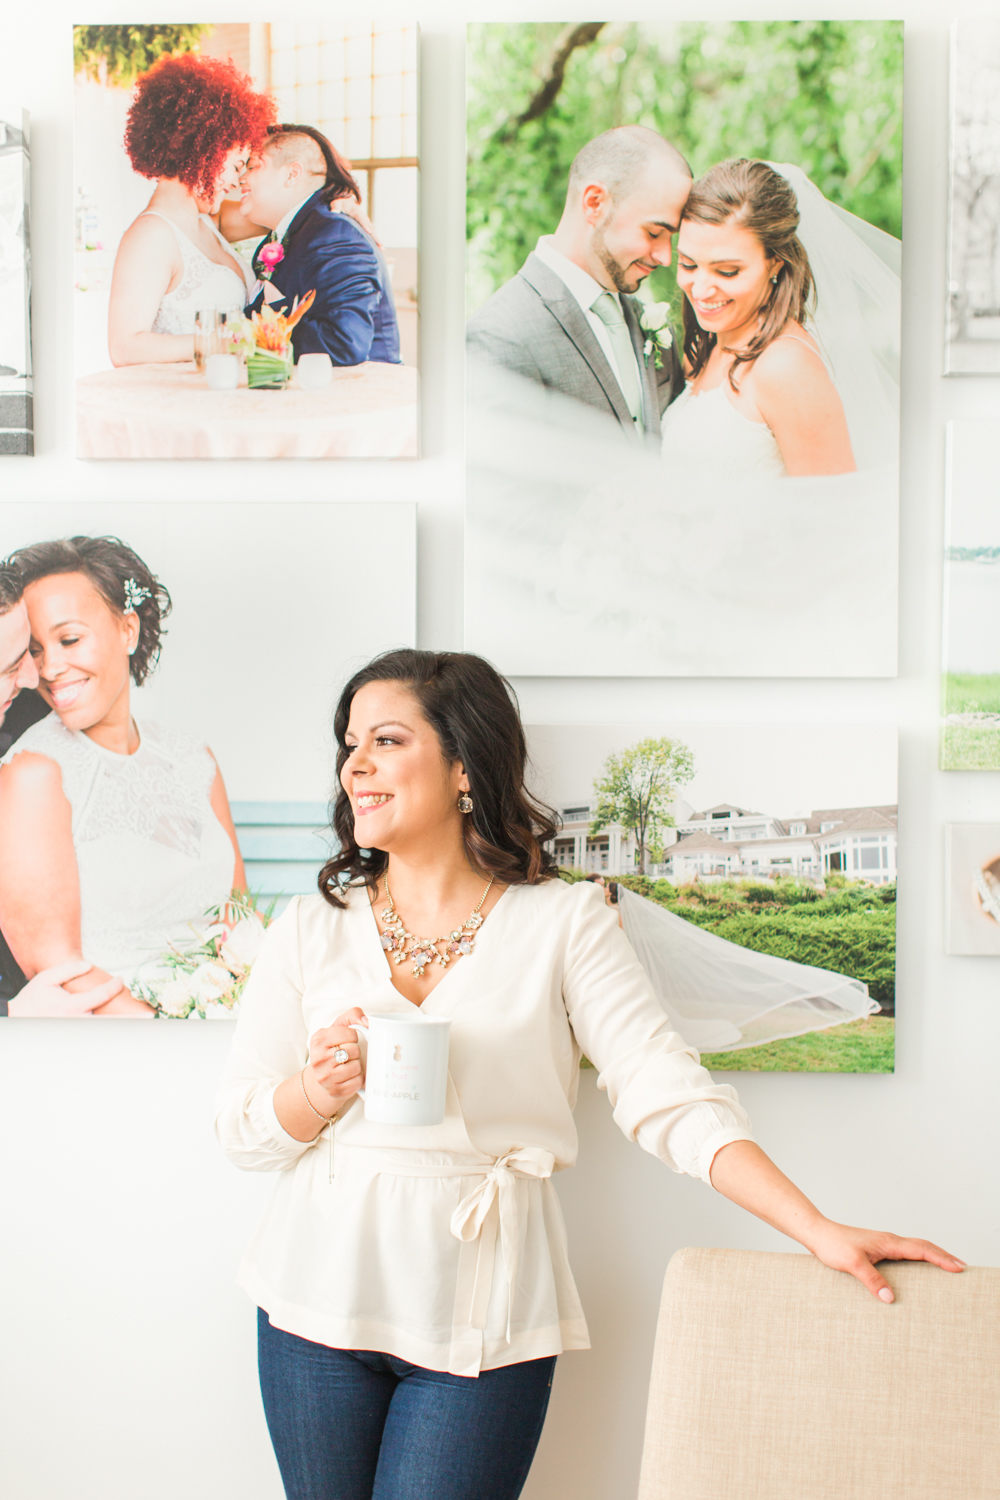 detaille-weddings-events-lifestyle-headshots-business-branding-session-photographer-shaina-lee-photography-photo